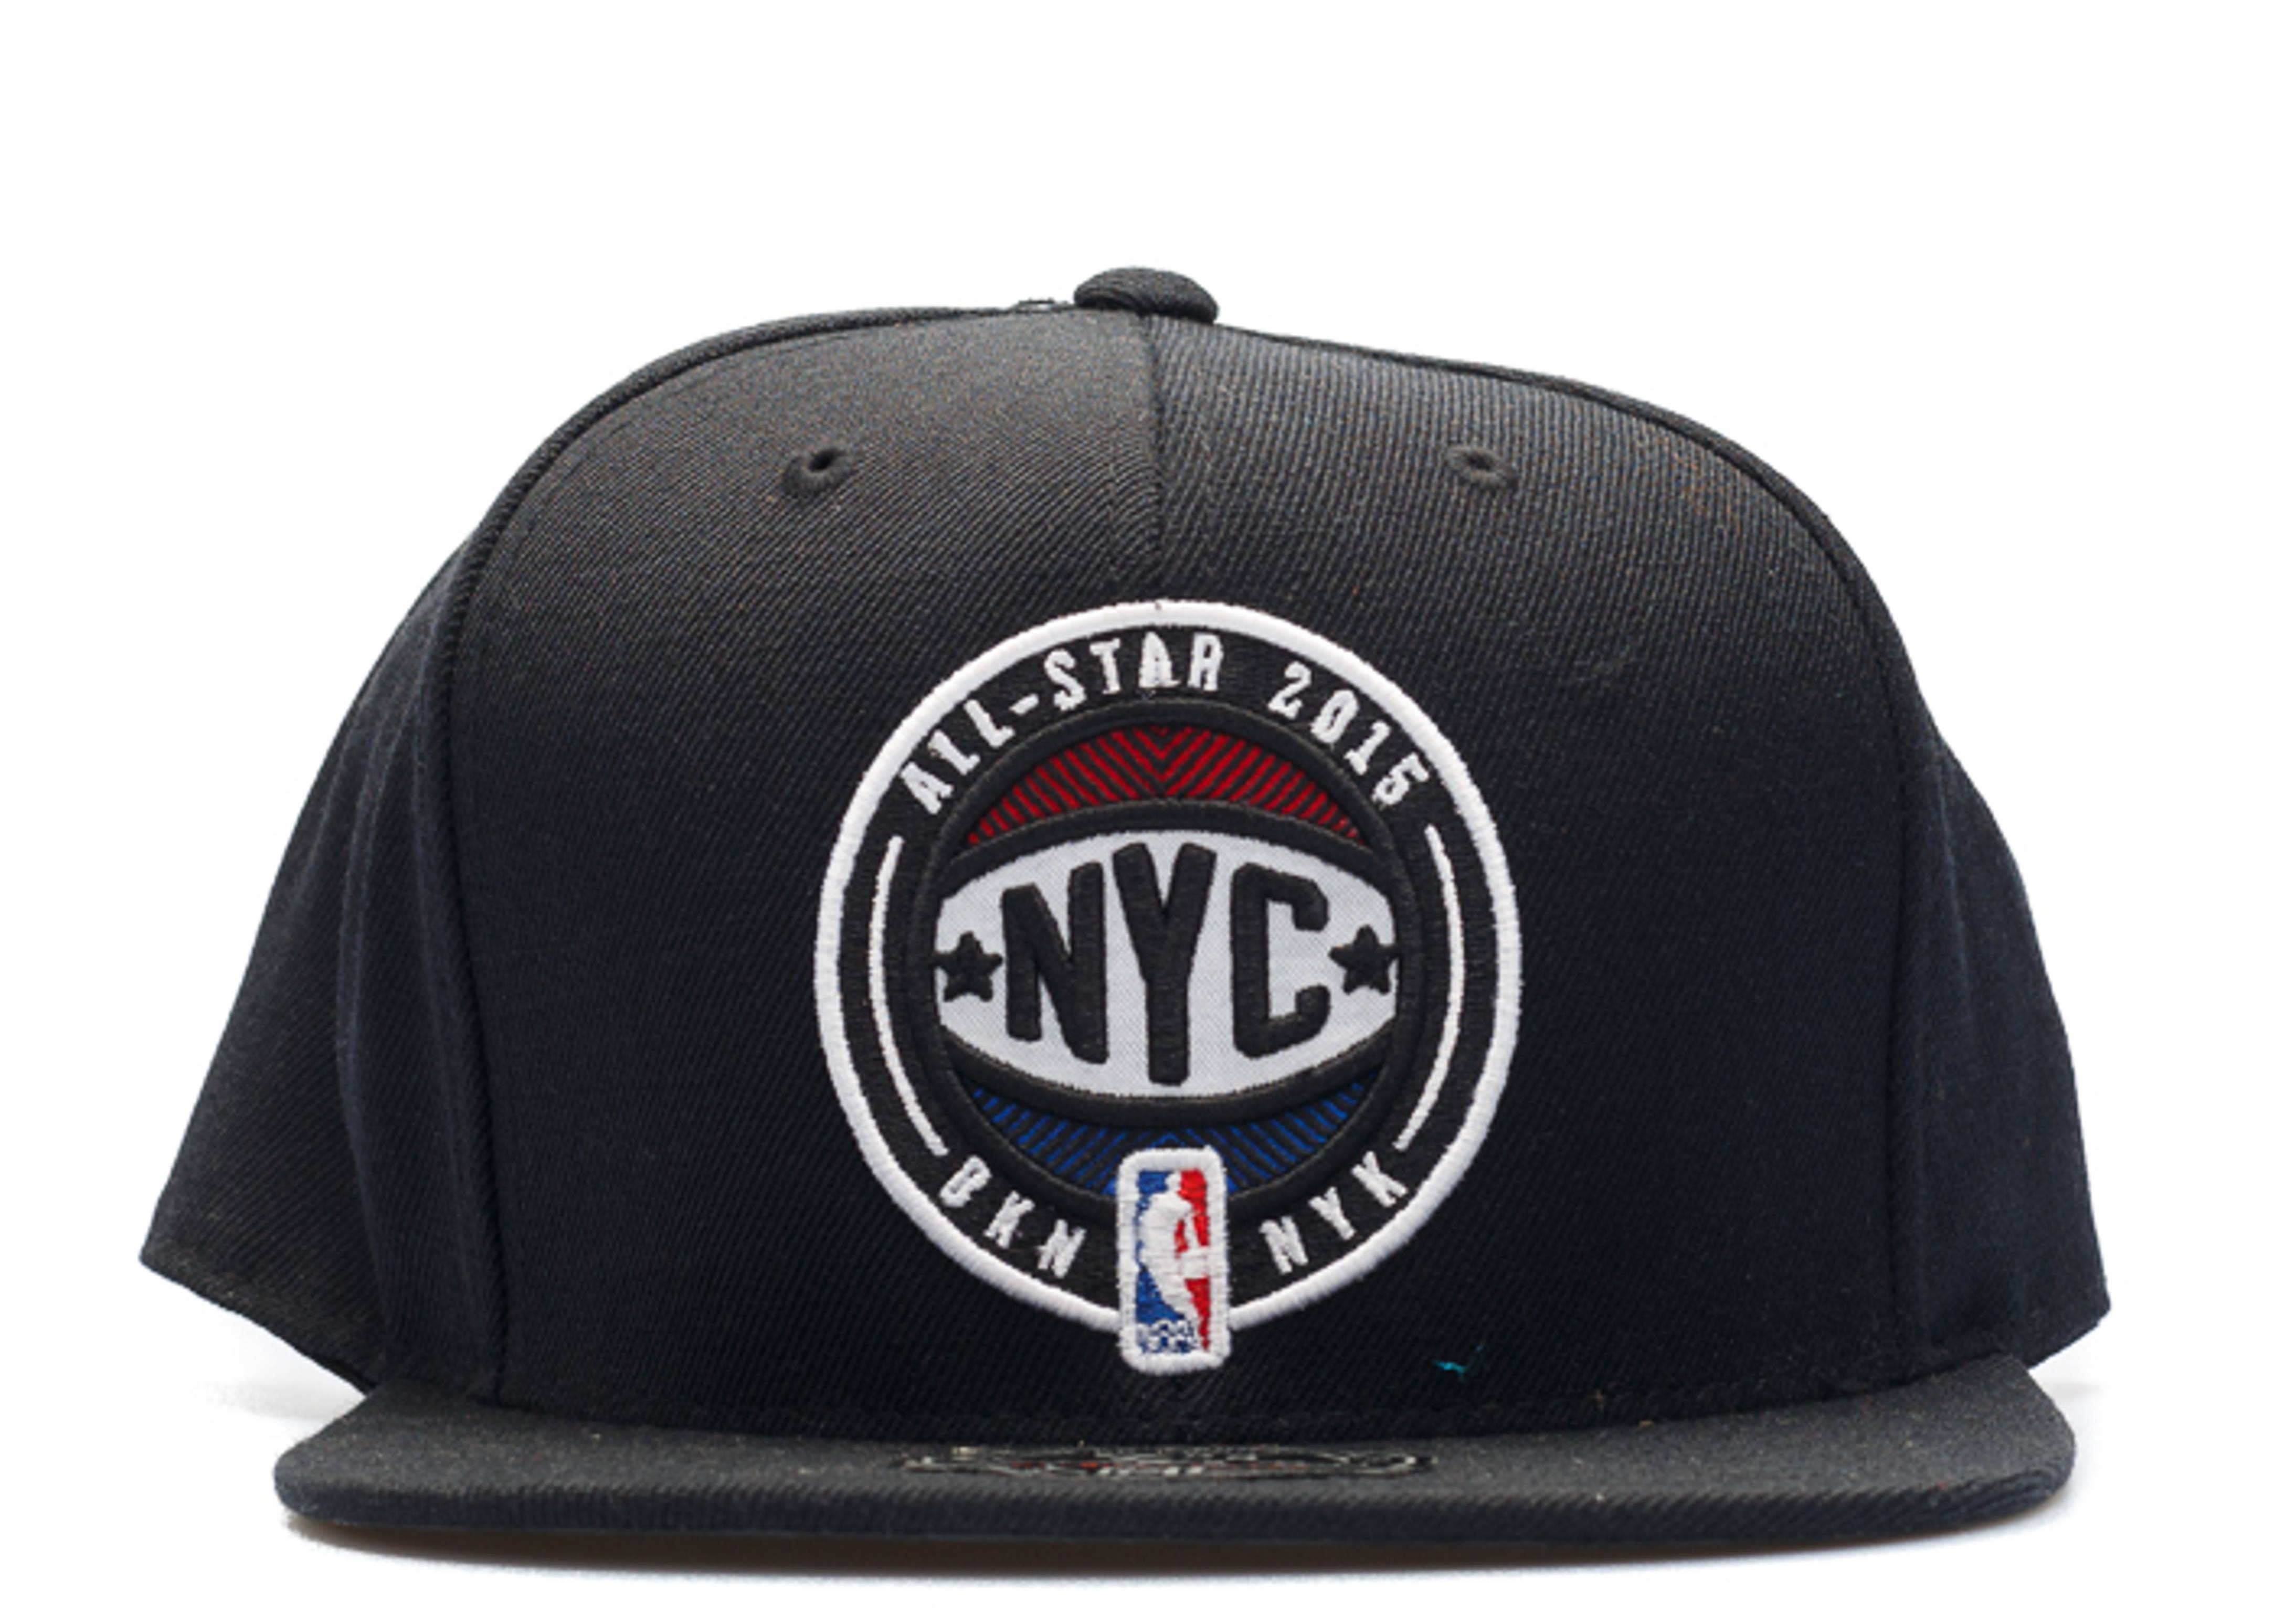 new york all star game 2015 fitted